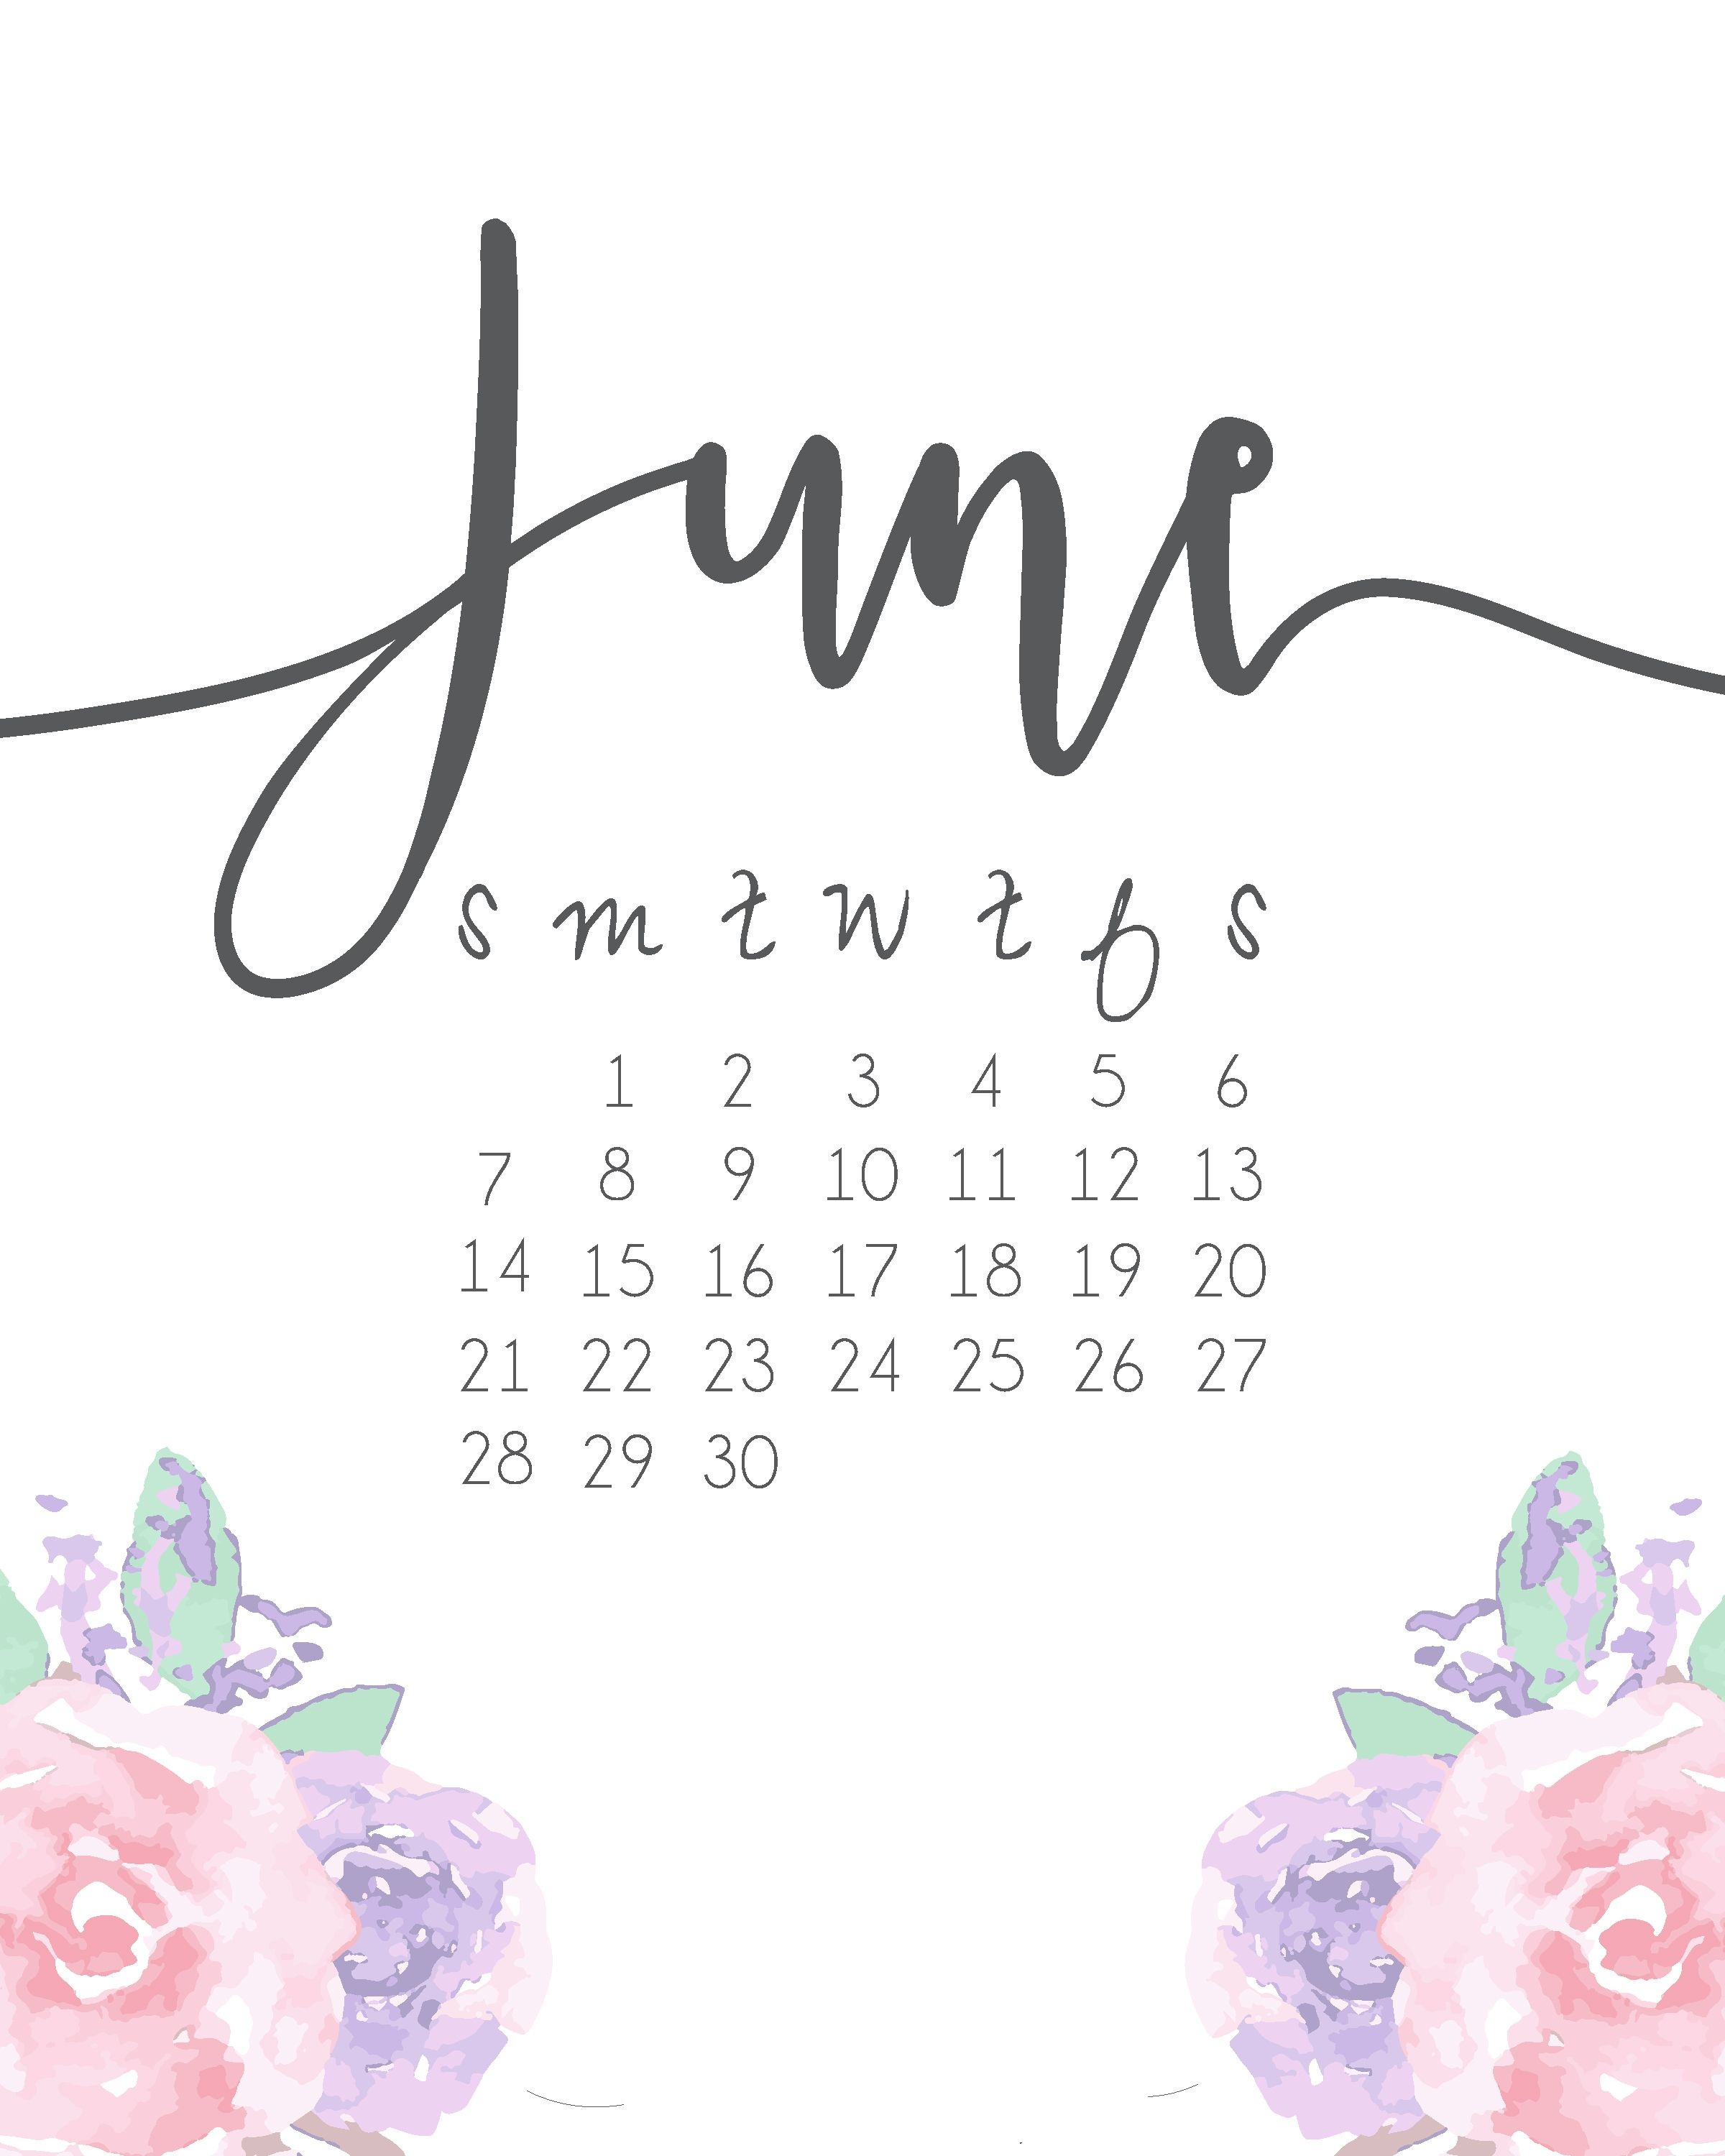 June 2018 Calendar Template Cute Floral